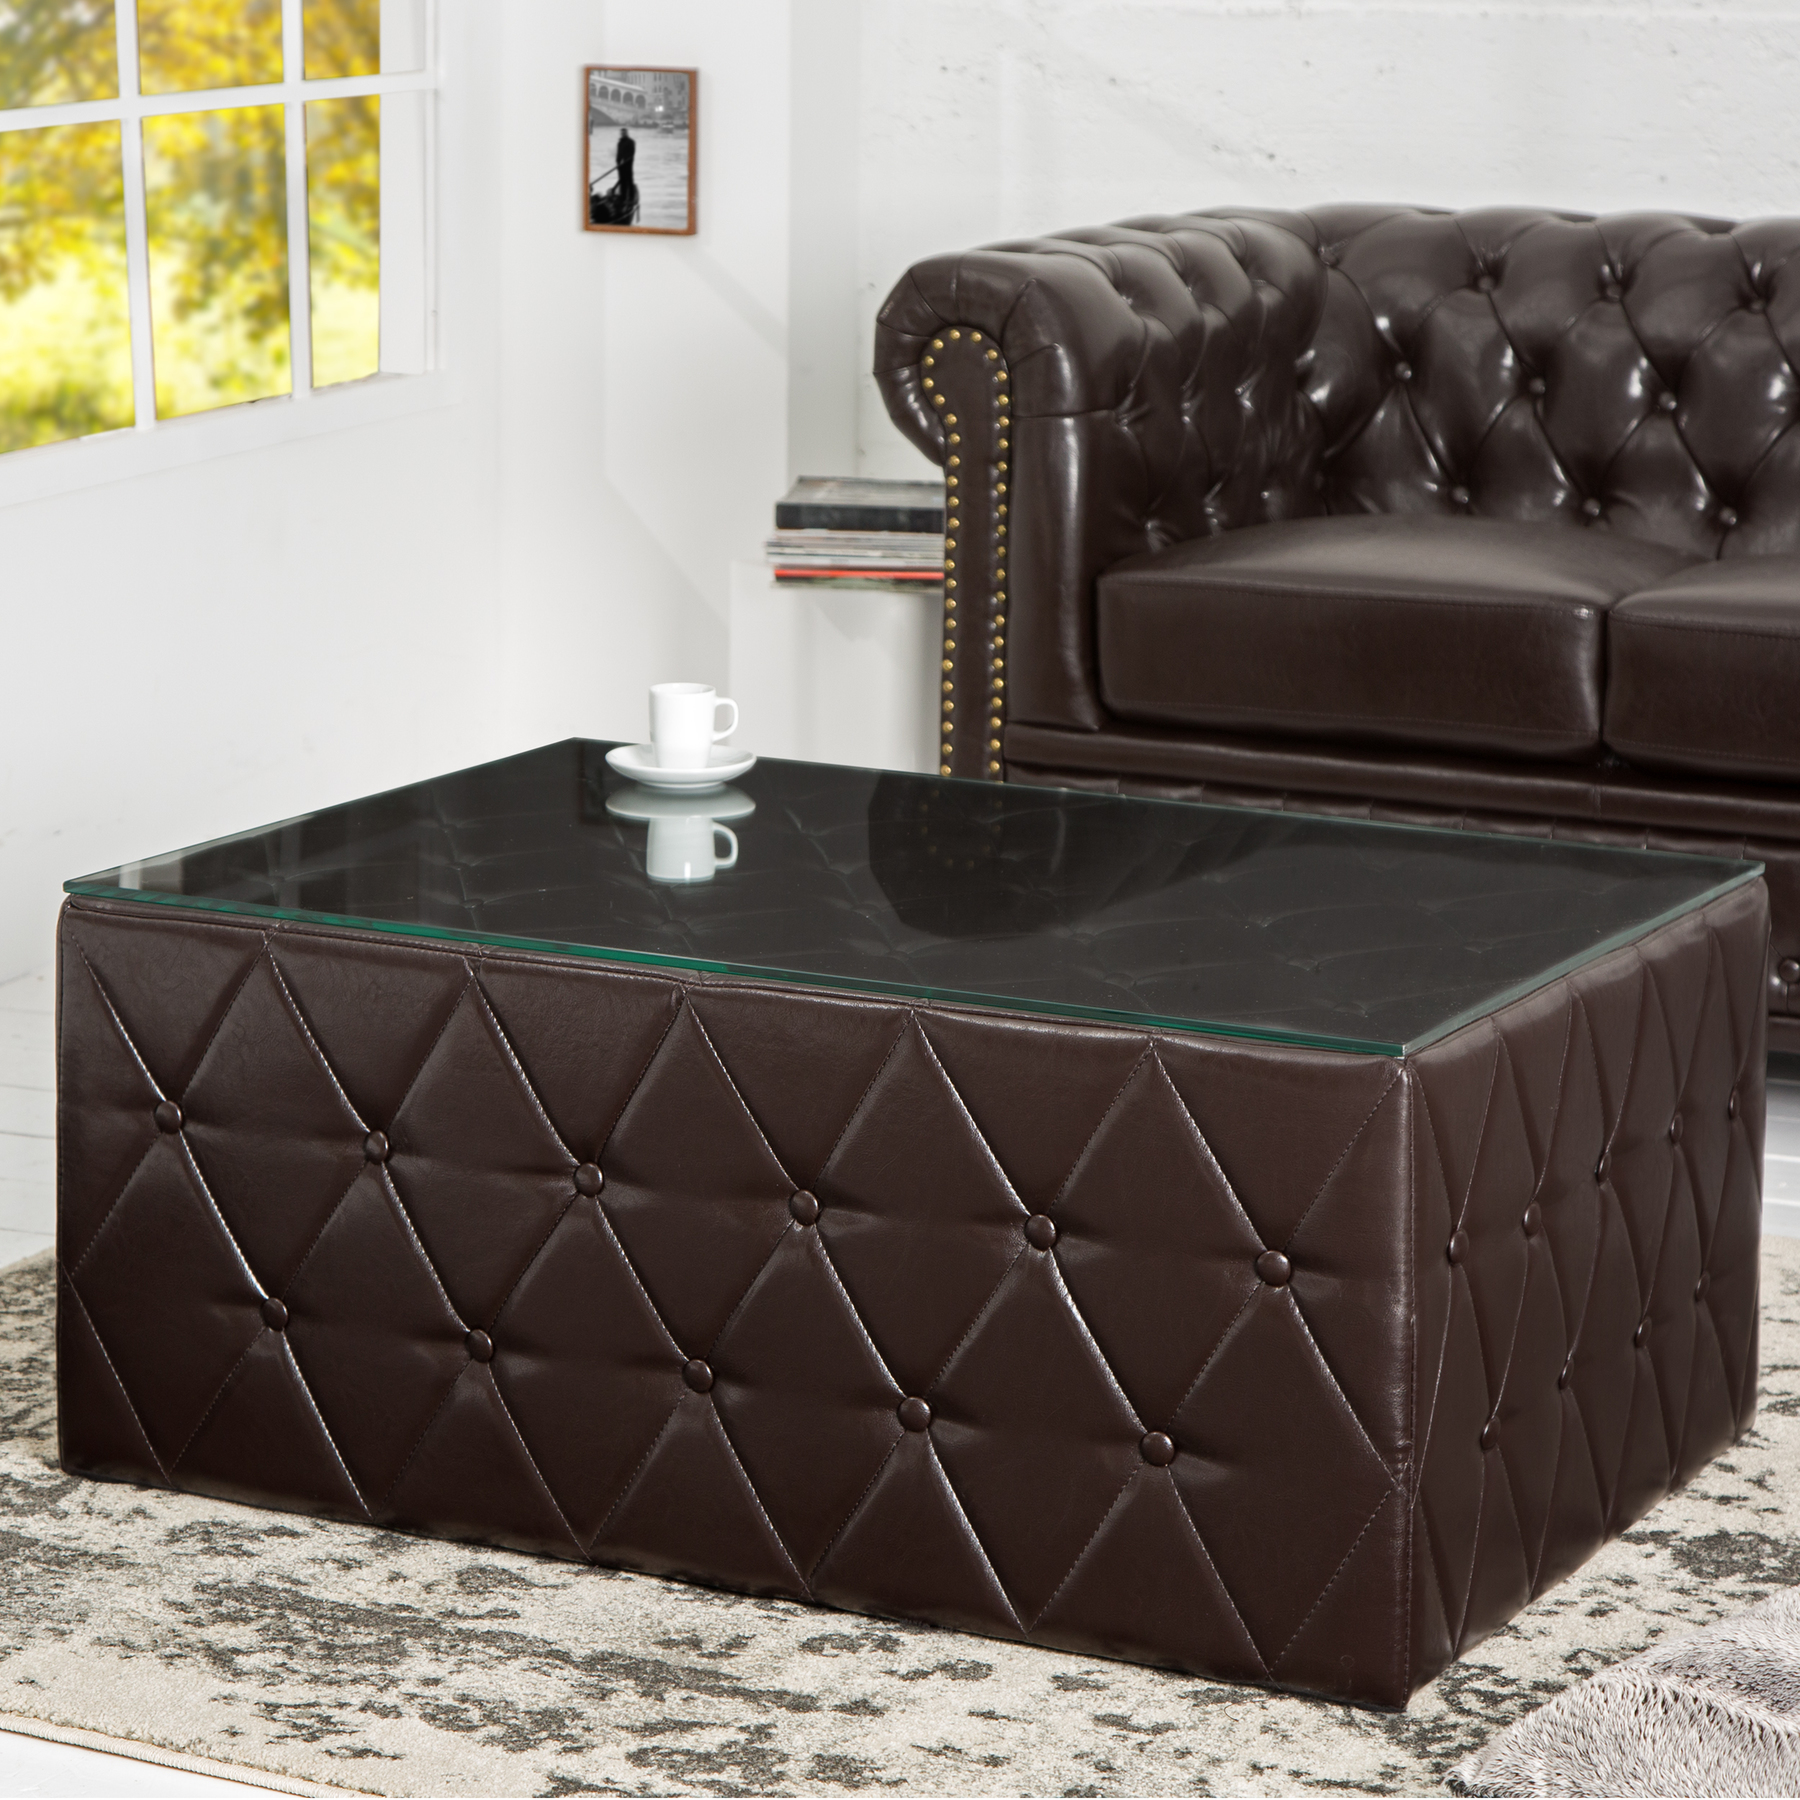 chesterfield couchtisch 100 cm hocker braun coffee glasplatte wohnzimmertisch 4250243567273 ebay. Black Bedroom Furniture Sets. Home Design Ideas